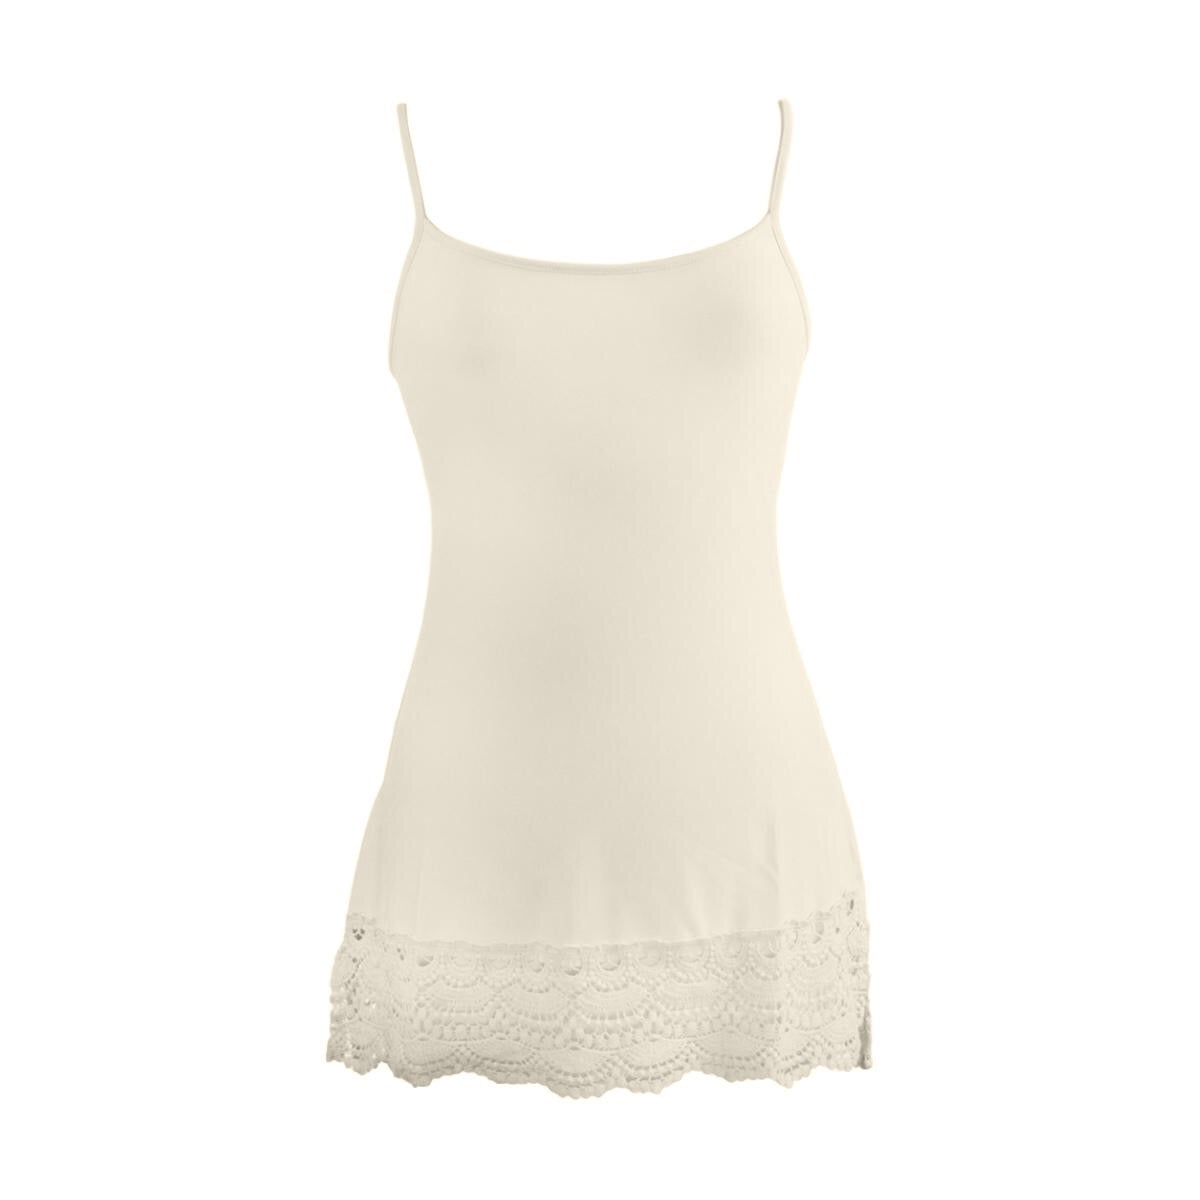 Foxglove Crochet Trim Top Extender | cream, top extenders & shimmy shirts, Peekaboo Chic | Modest Layering Apparel for women